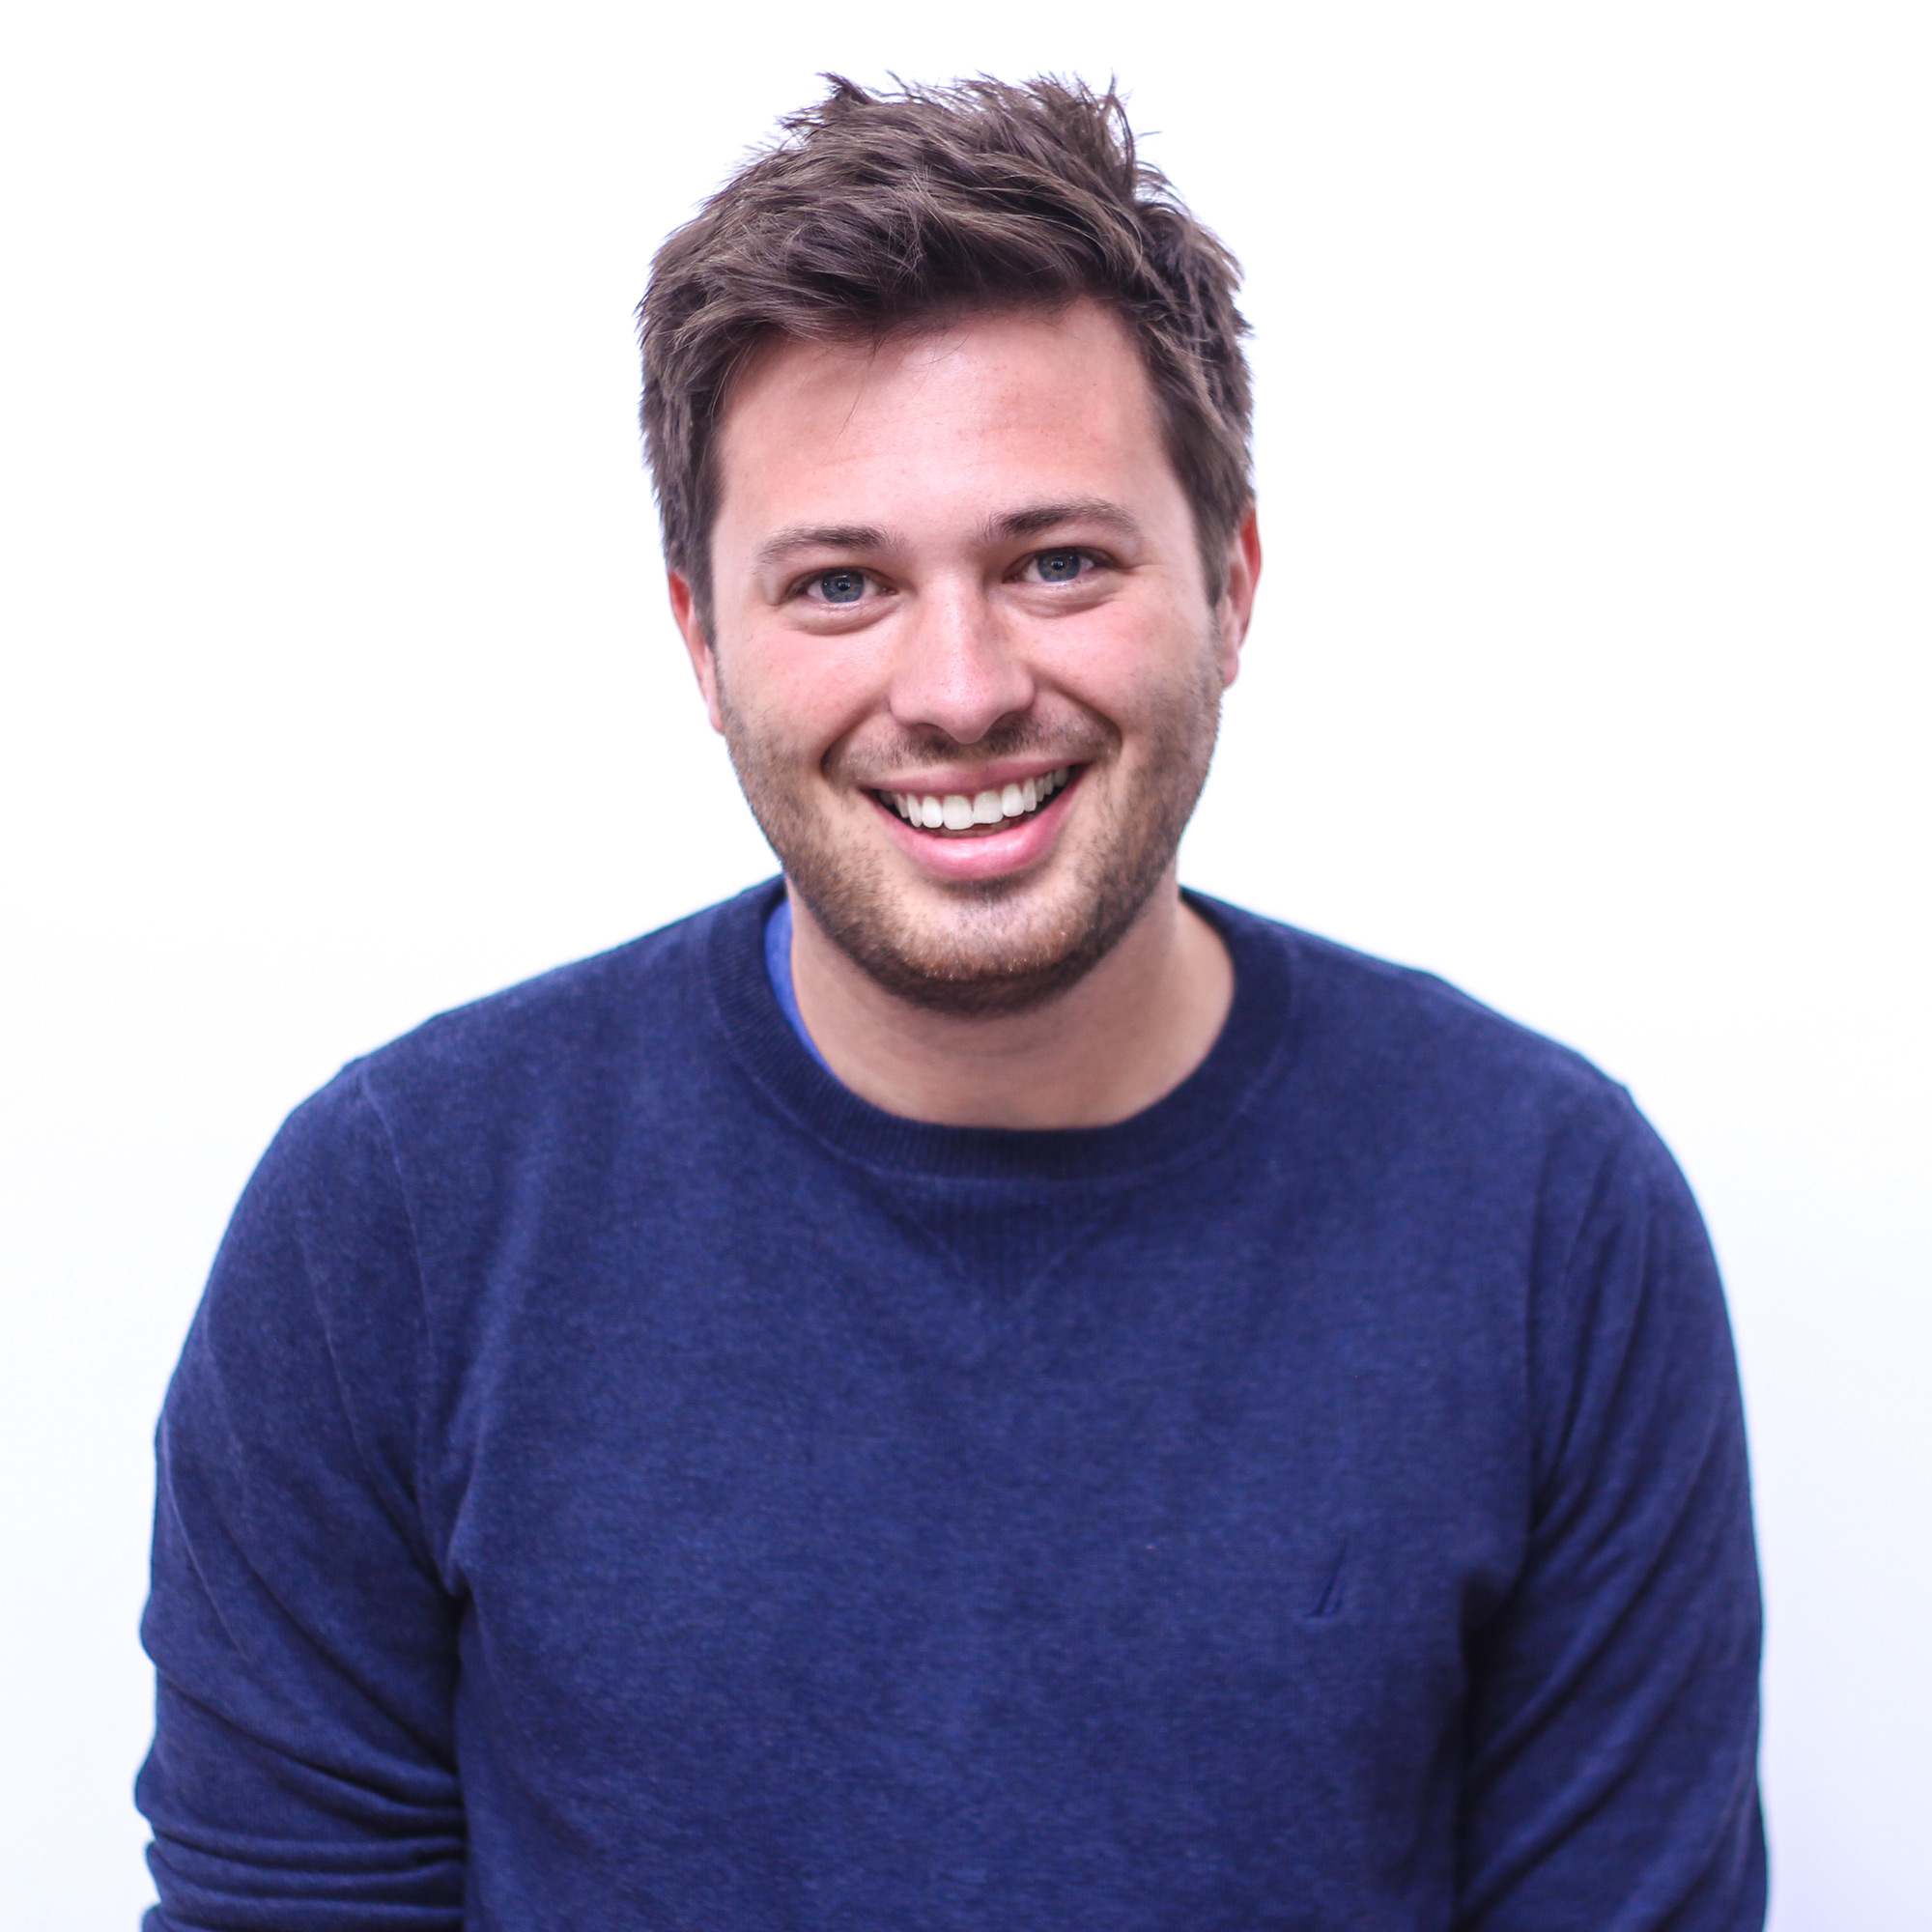 Zac Williams - Co-Founder and Director at GroudTouch